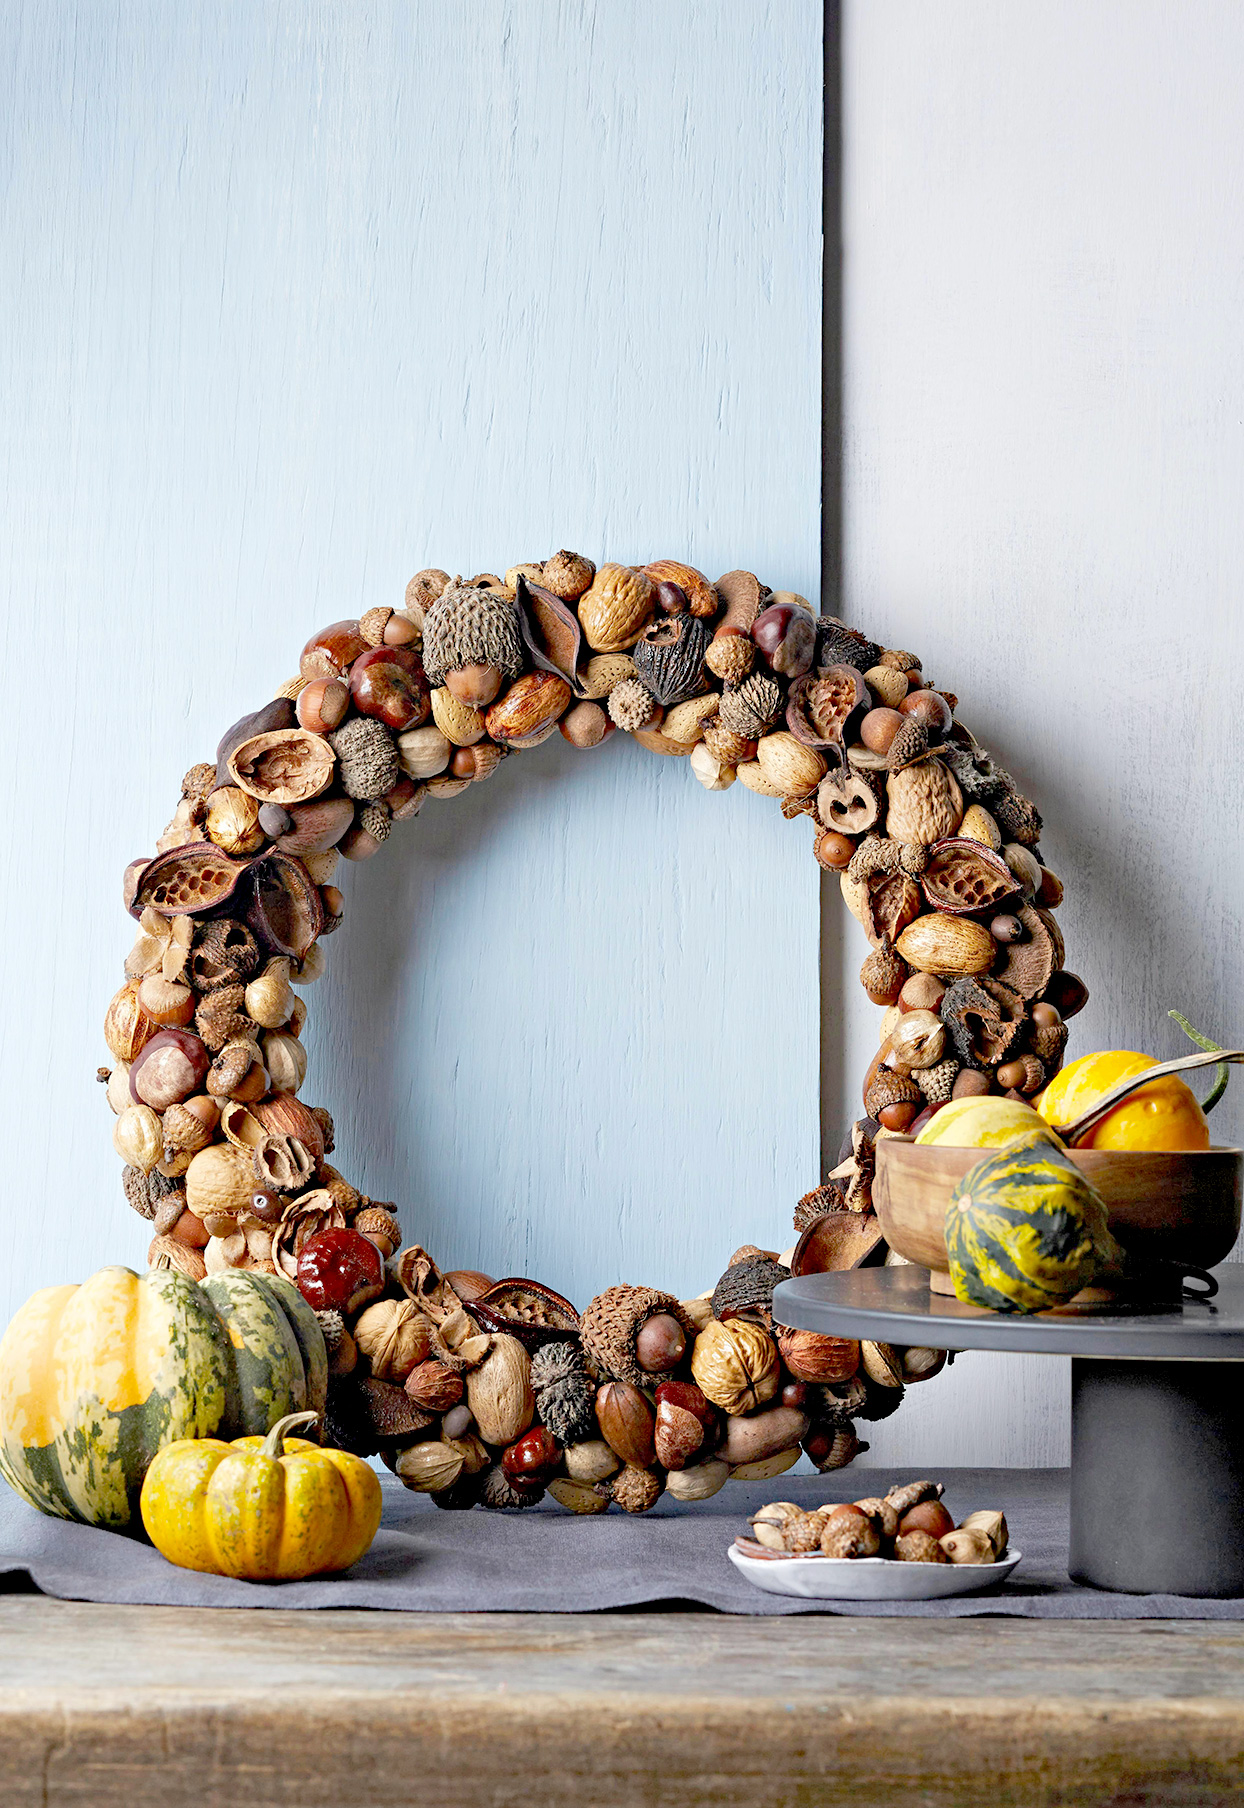 Wreath of nut shells with pumpkins